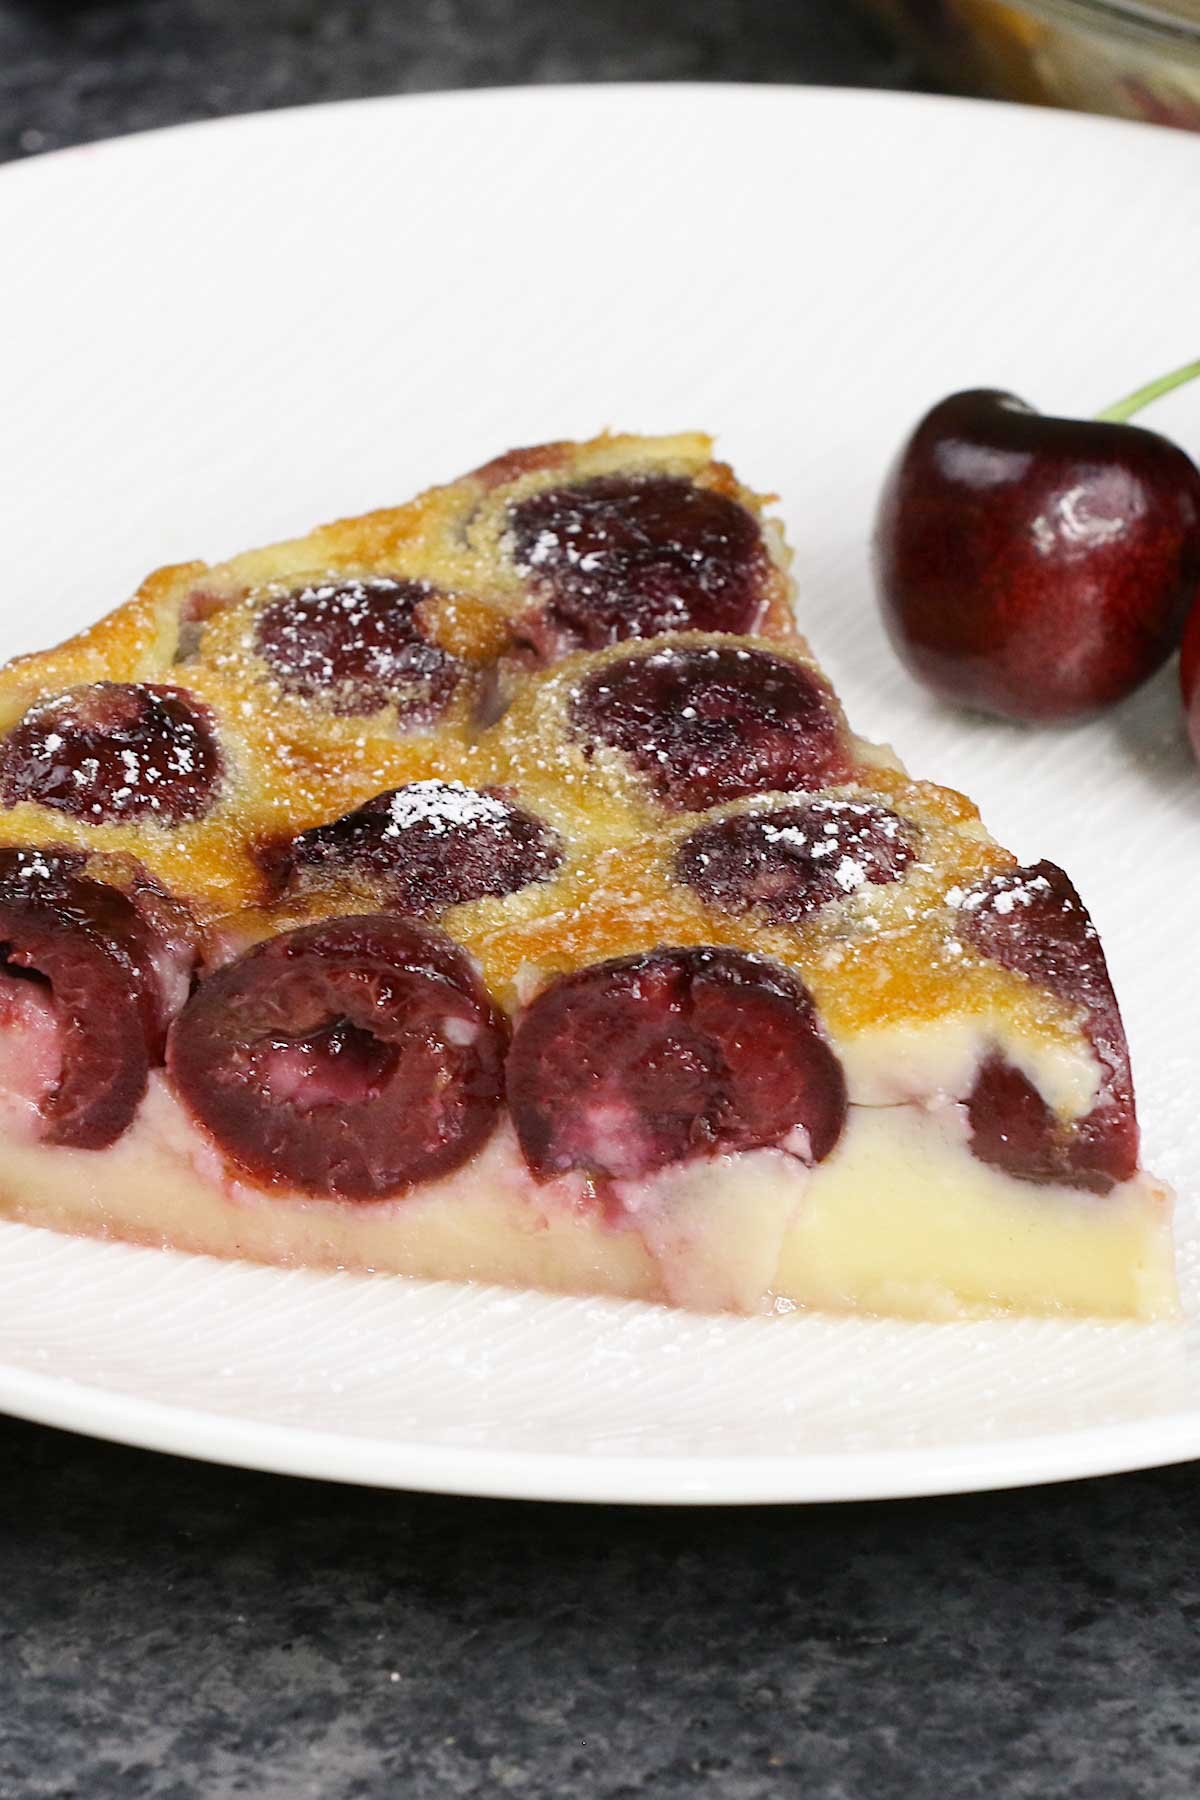 Clafoutis is a classic French dessert that is pleasing to both the eyes and taste buds. Sweet, fresh cherries are baked in a simple batter of milk, sugar, eggs, and flour. The result is a fruity, creamy dessert with a taste similar to custard. You can easily customize this recipe with other fruits like blueberry, raspberry, or apple